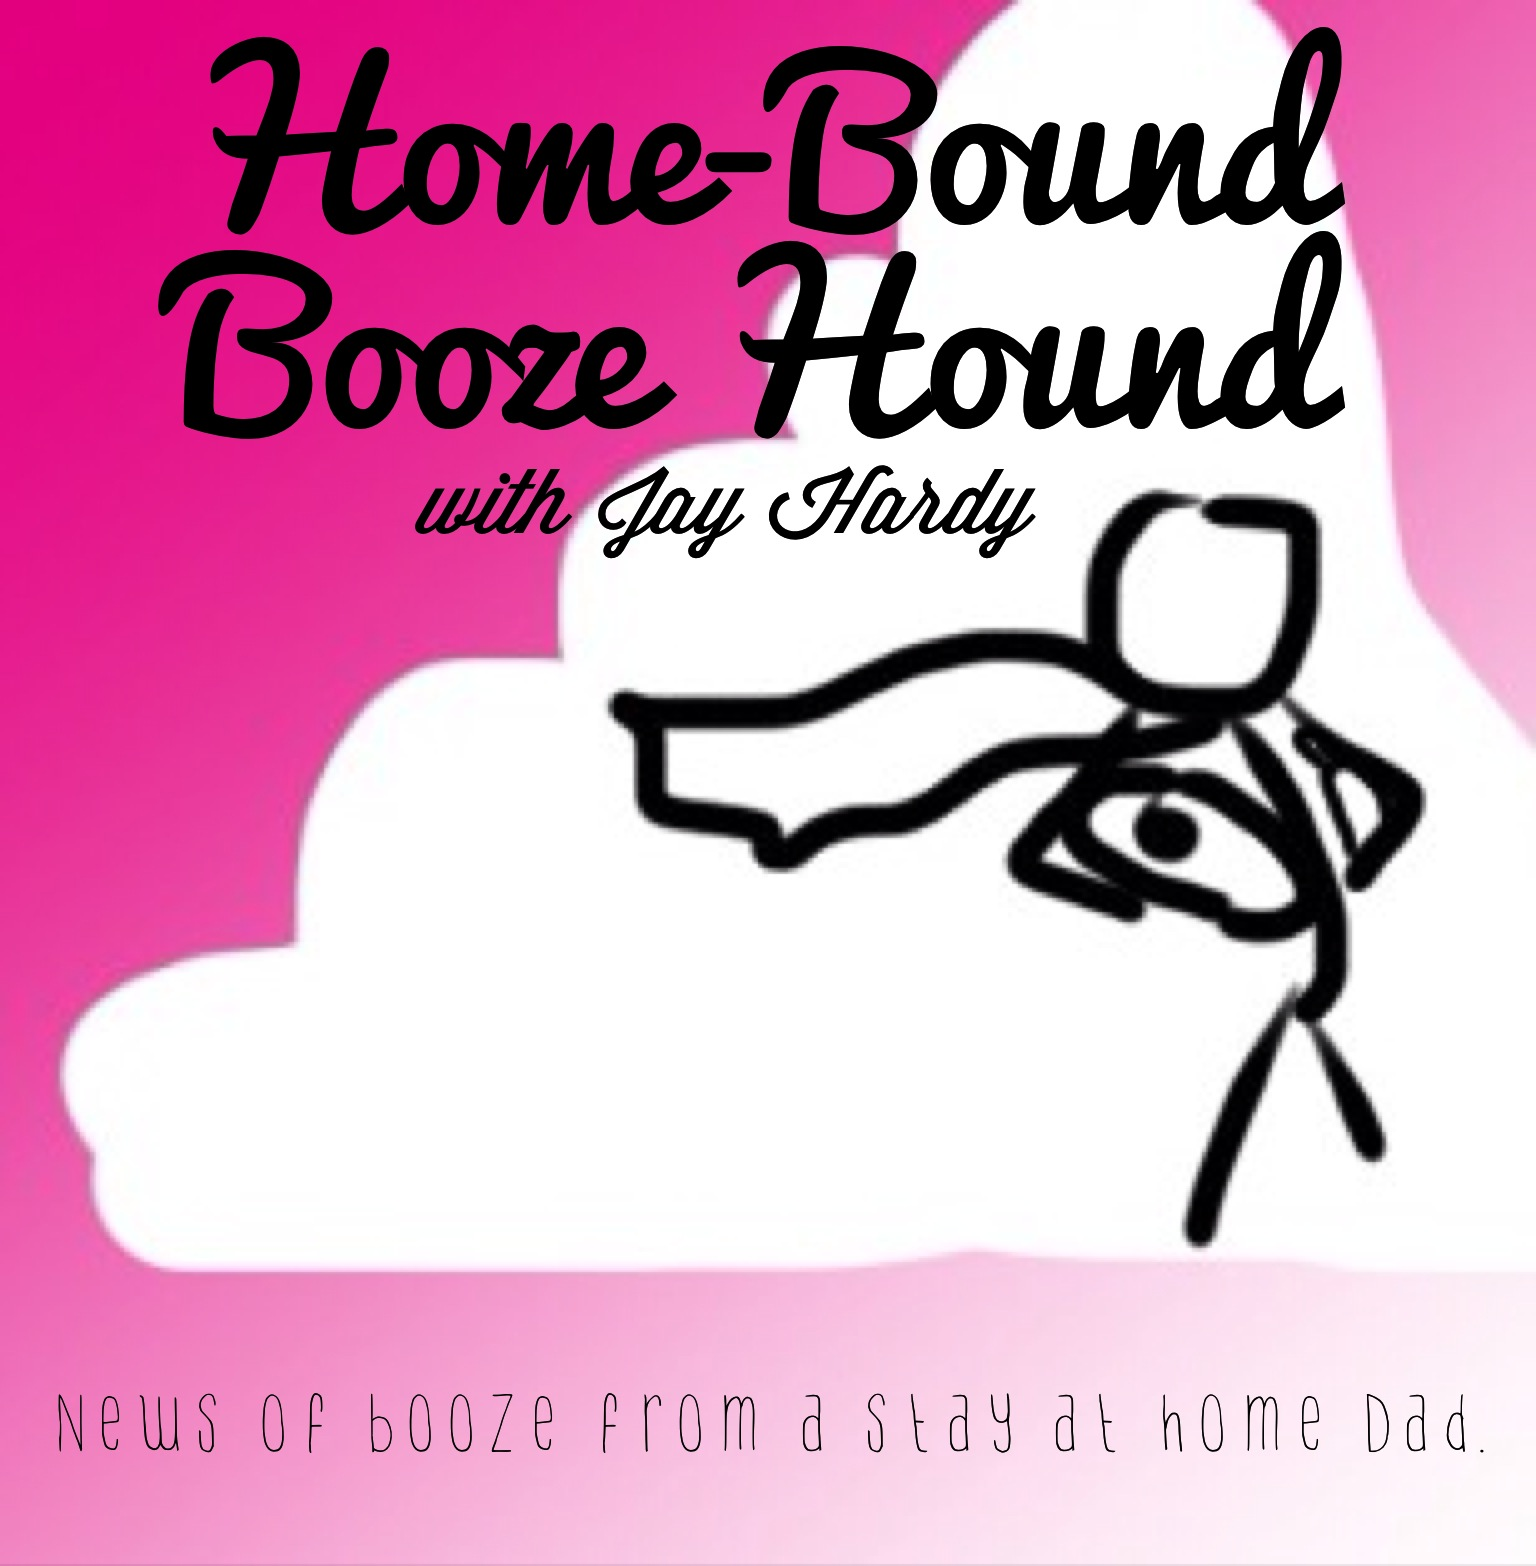 Home-Bound Booze Hound